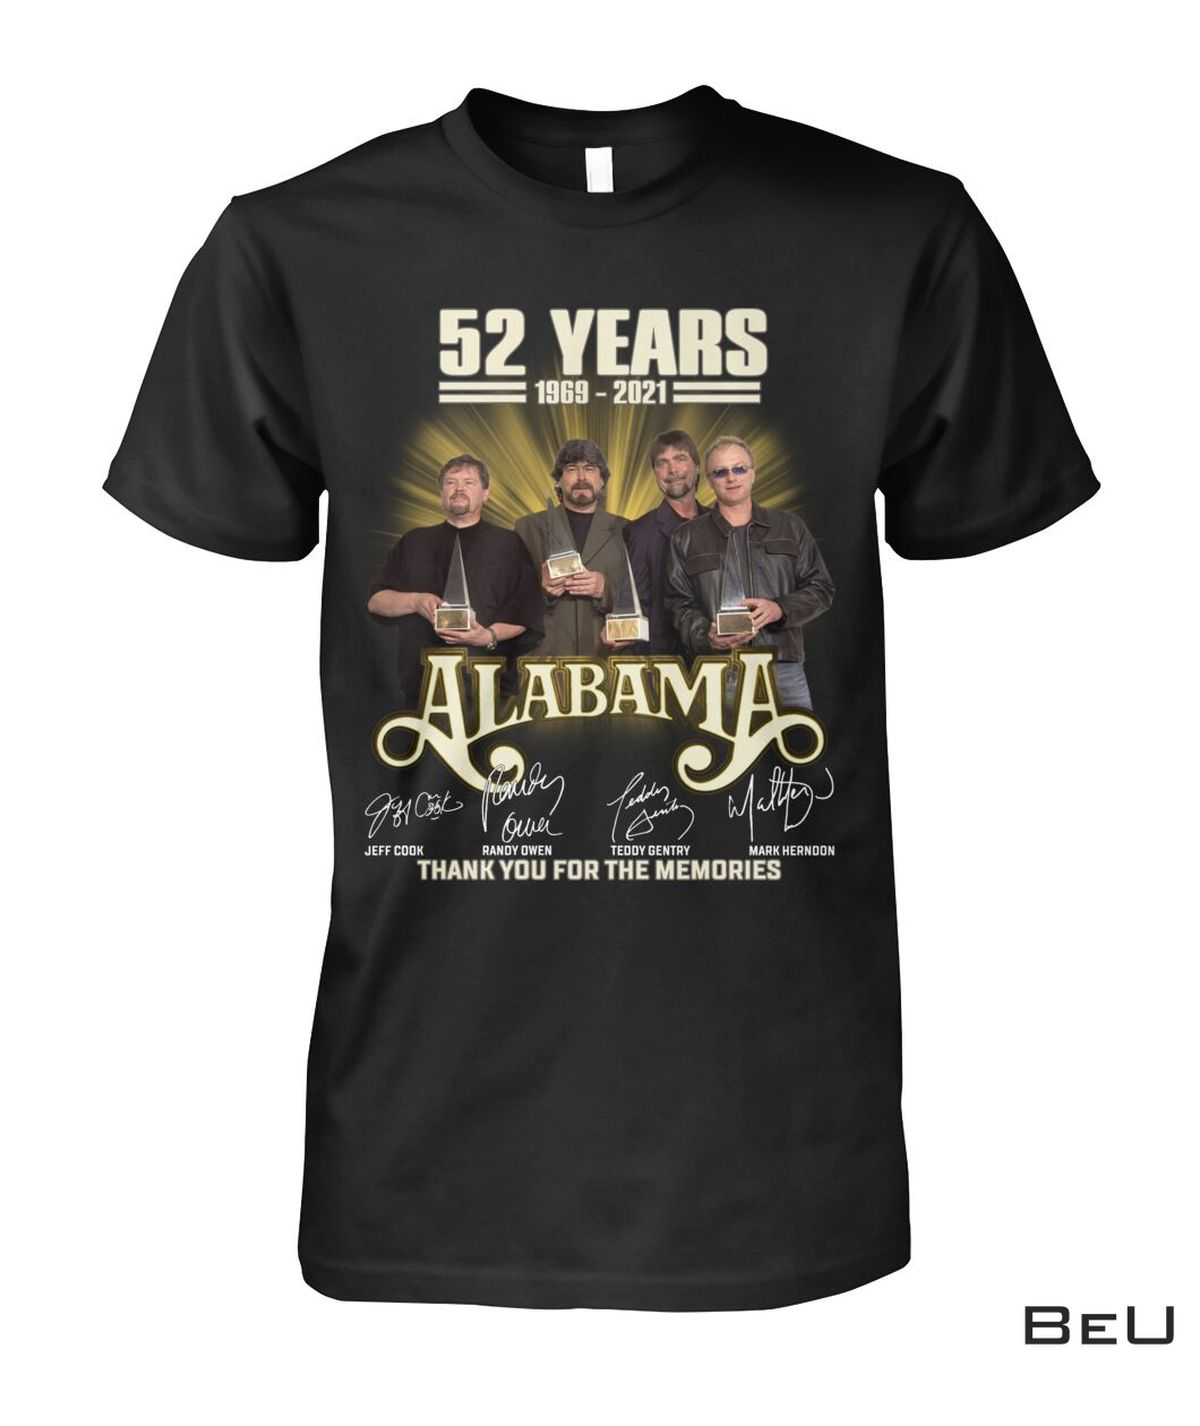 Alabama 52 Years Thank You For The Memories Shirt